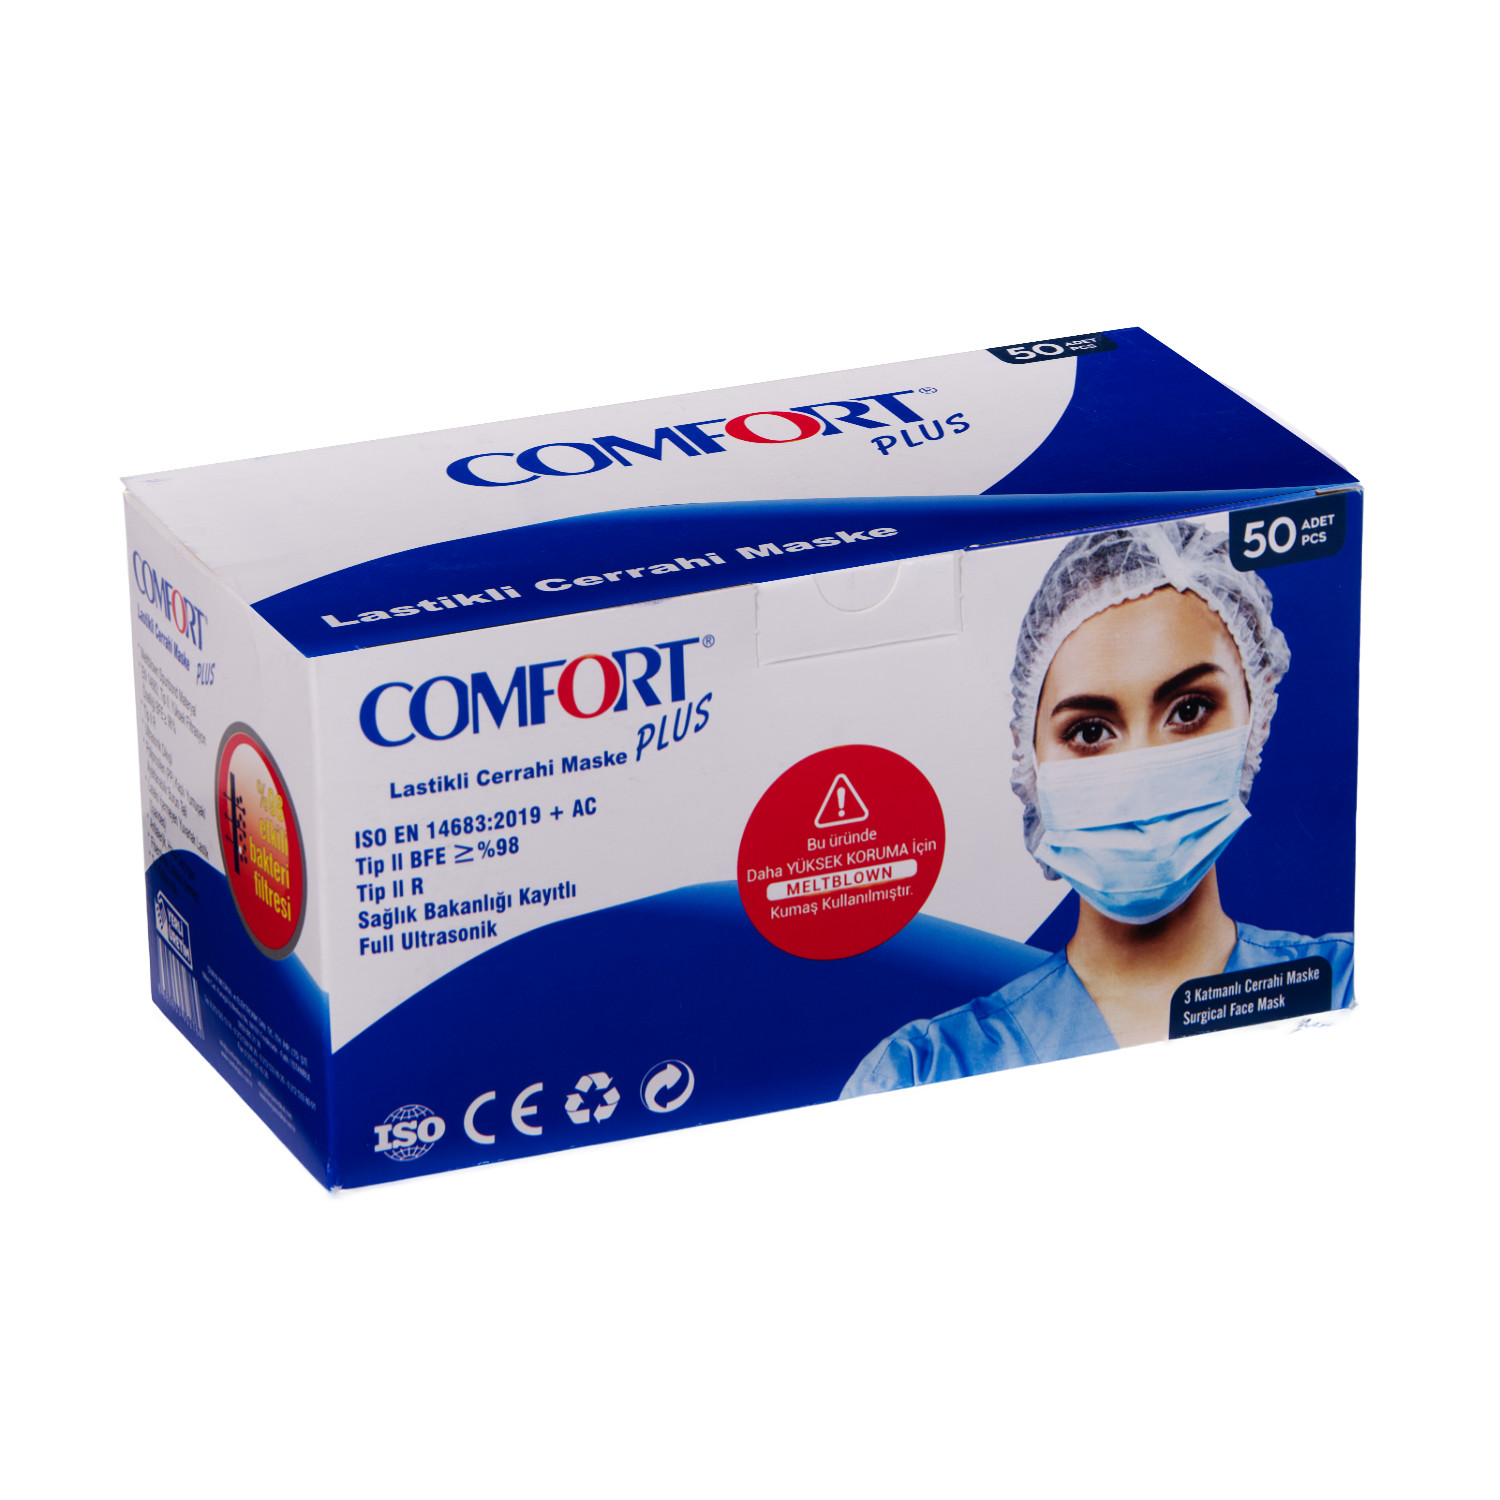 Comfort Plus 3 Katlı Cerrahi Maske Full Ultrasonic Meltblown Filitreli